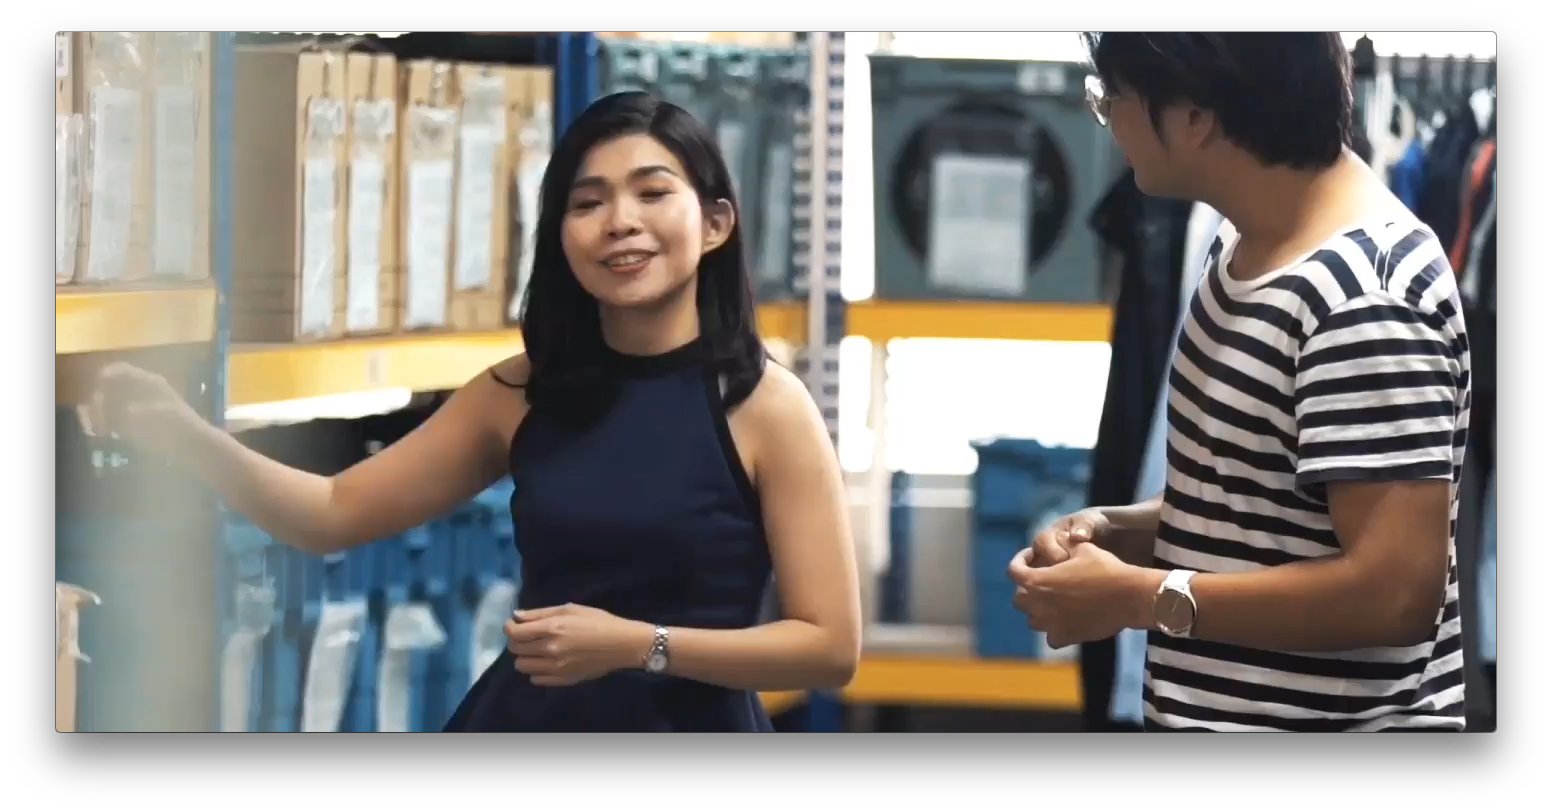 Zalora video first frame